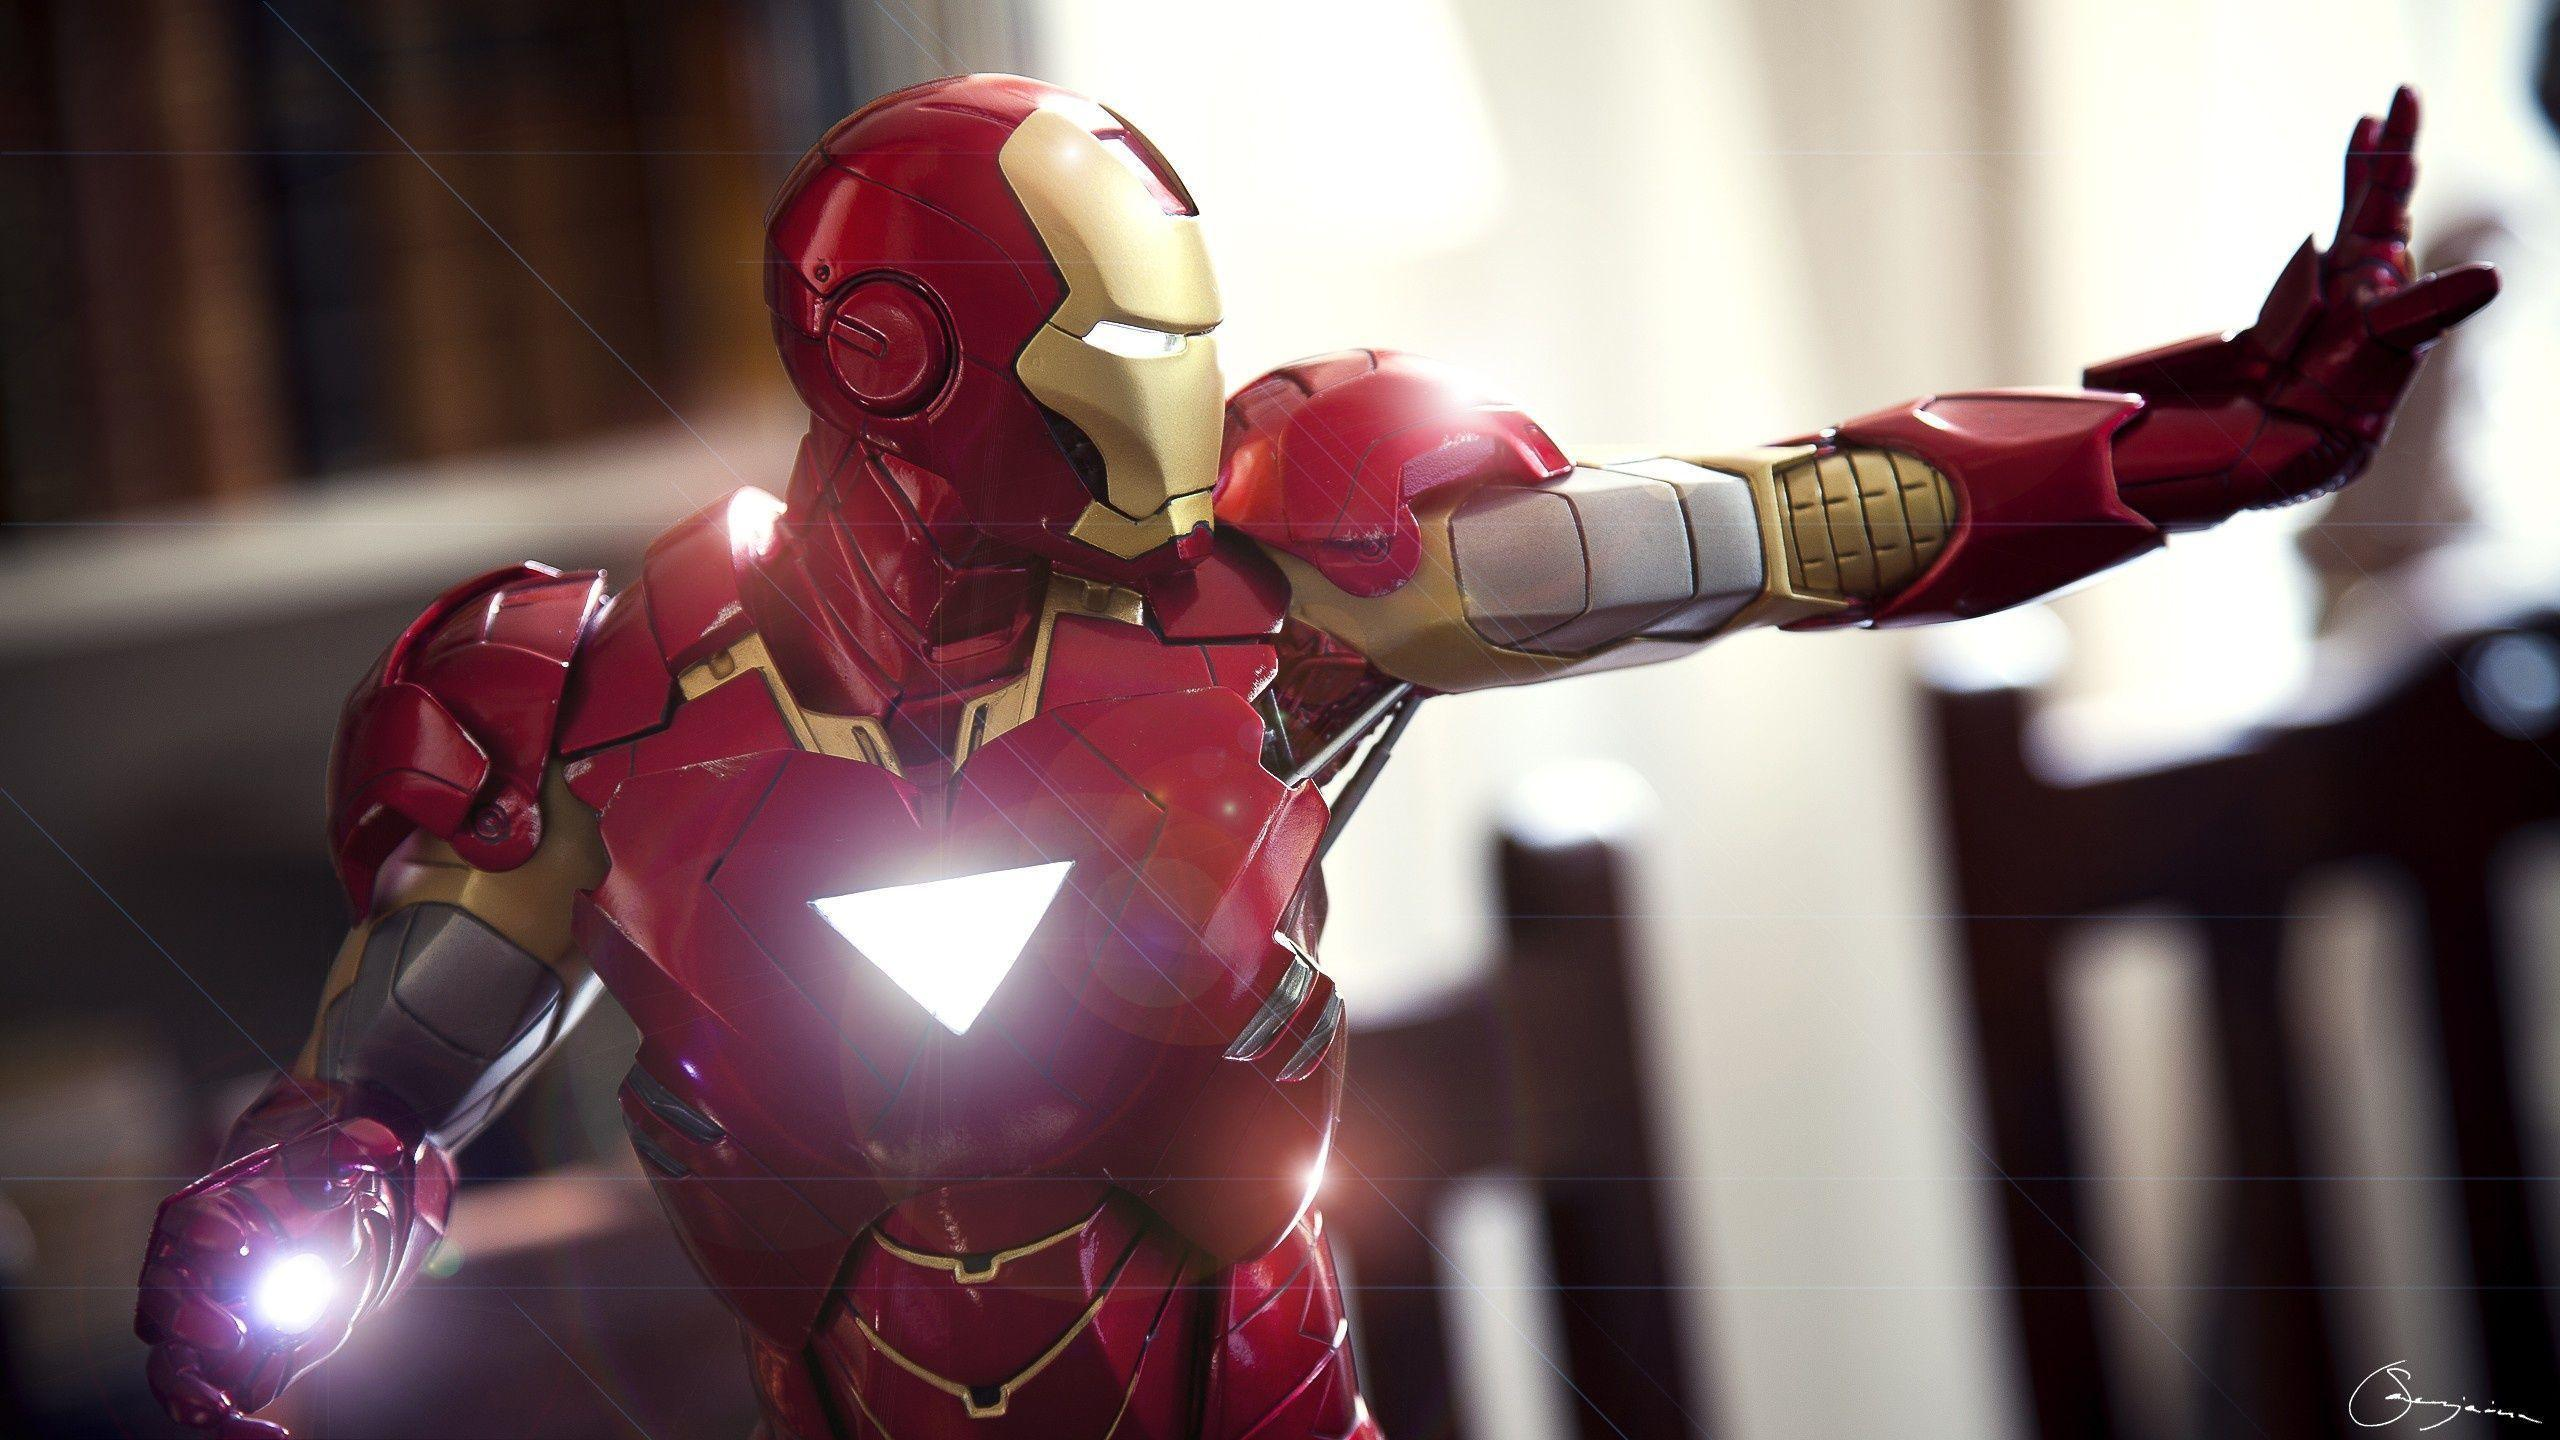 Wallpapers For > Iron Man Suit Wallpapers Hd